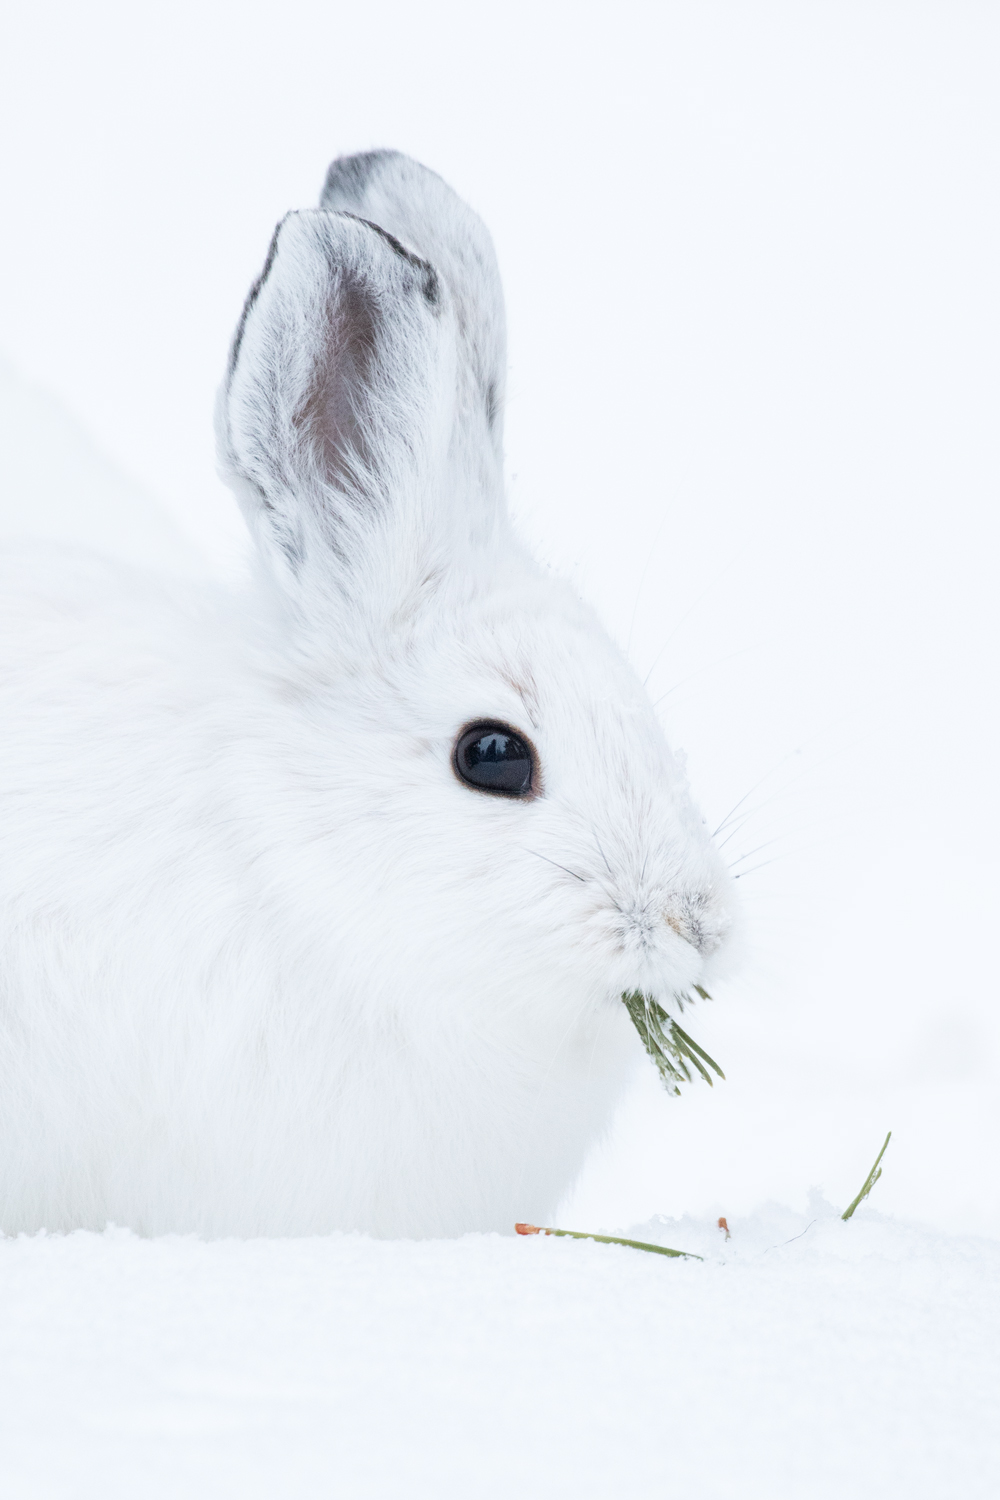 Snowshoe Hare, Cascade Mountains, British Columbia